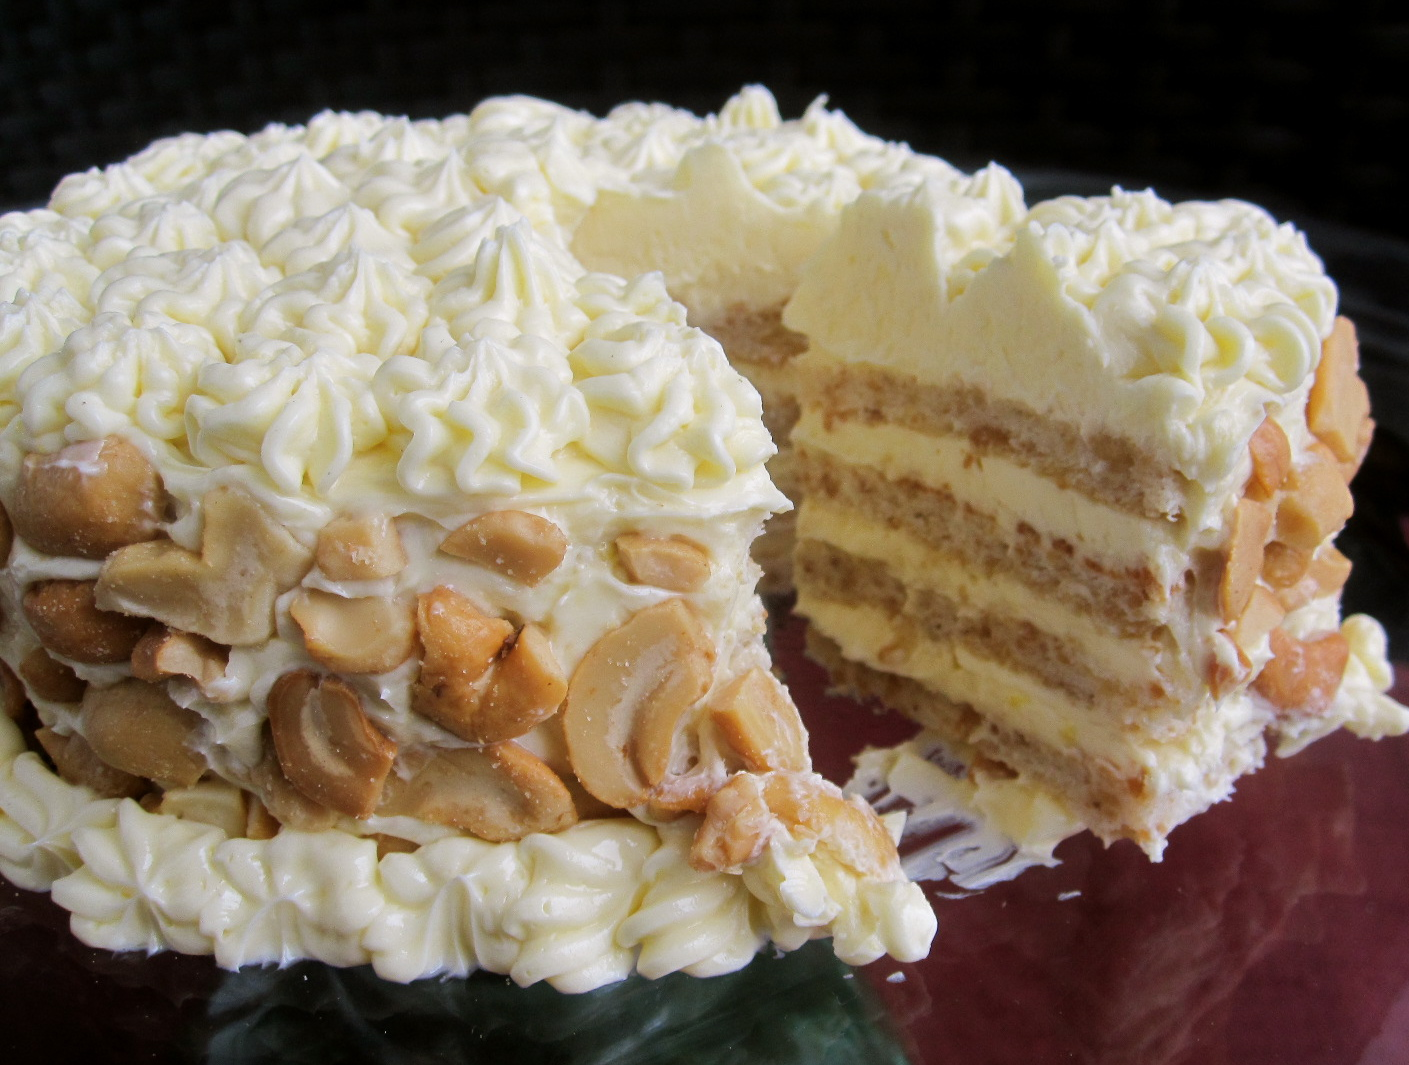 Filipino Cake Recipes With Pictures : The Cultural Dish: Daring Bakers: Sans Rival